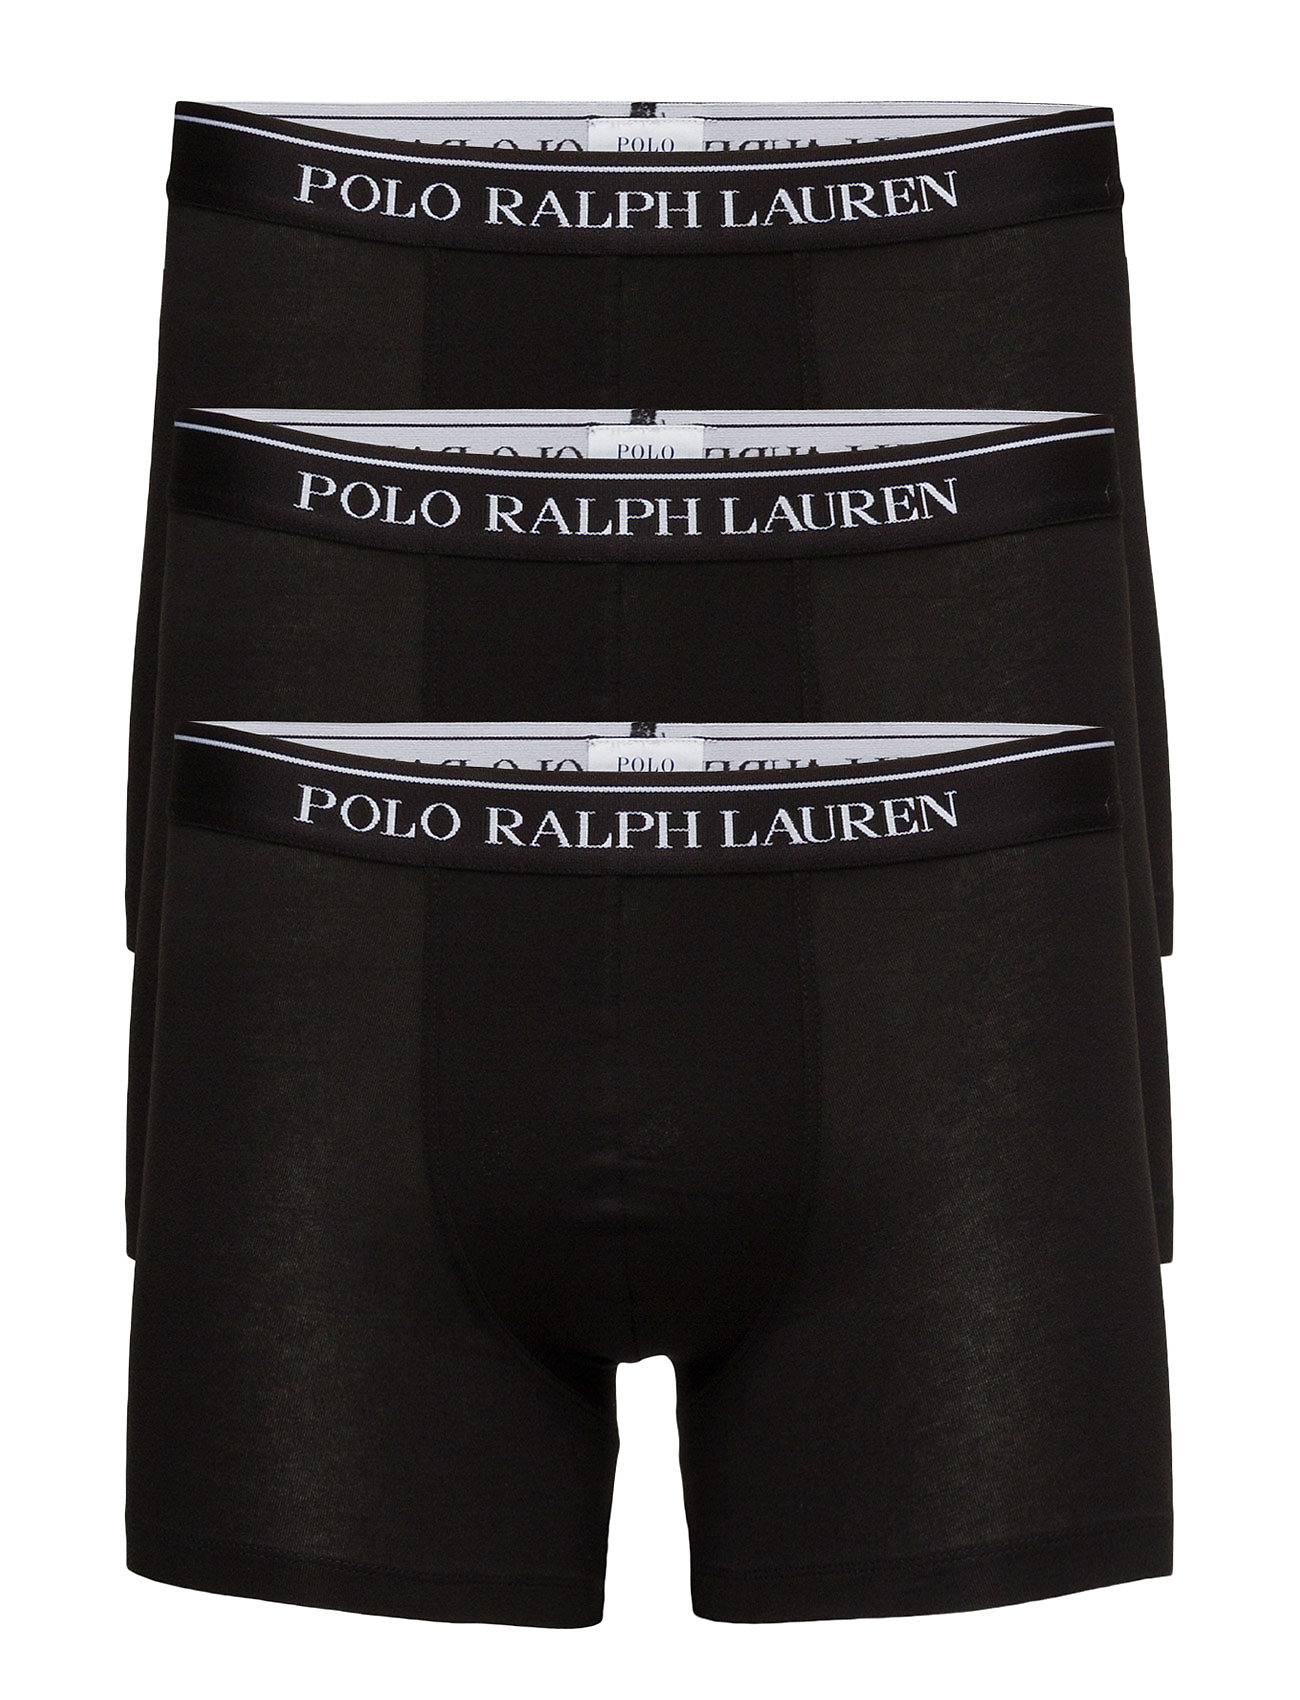 Polo Ralph Lauren Underwear Stretch-Cotton-Trunk 3-Pack - 3PK POLO BLK